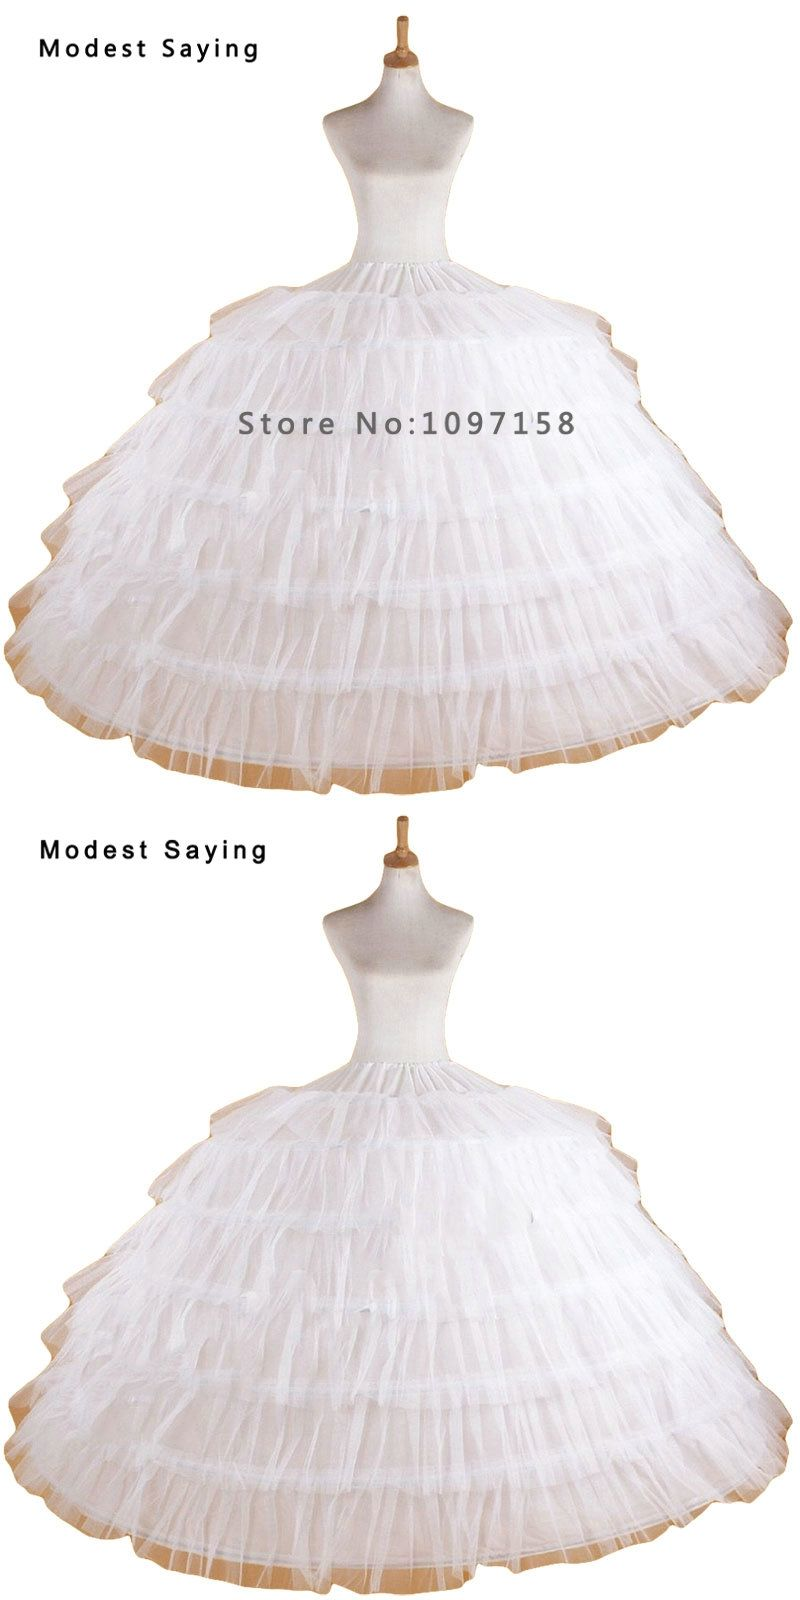 Luxury Puffy 6 Hoops Petticoat Underskirt For Big Ball Gown Wedding ...